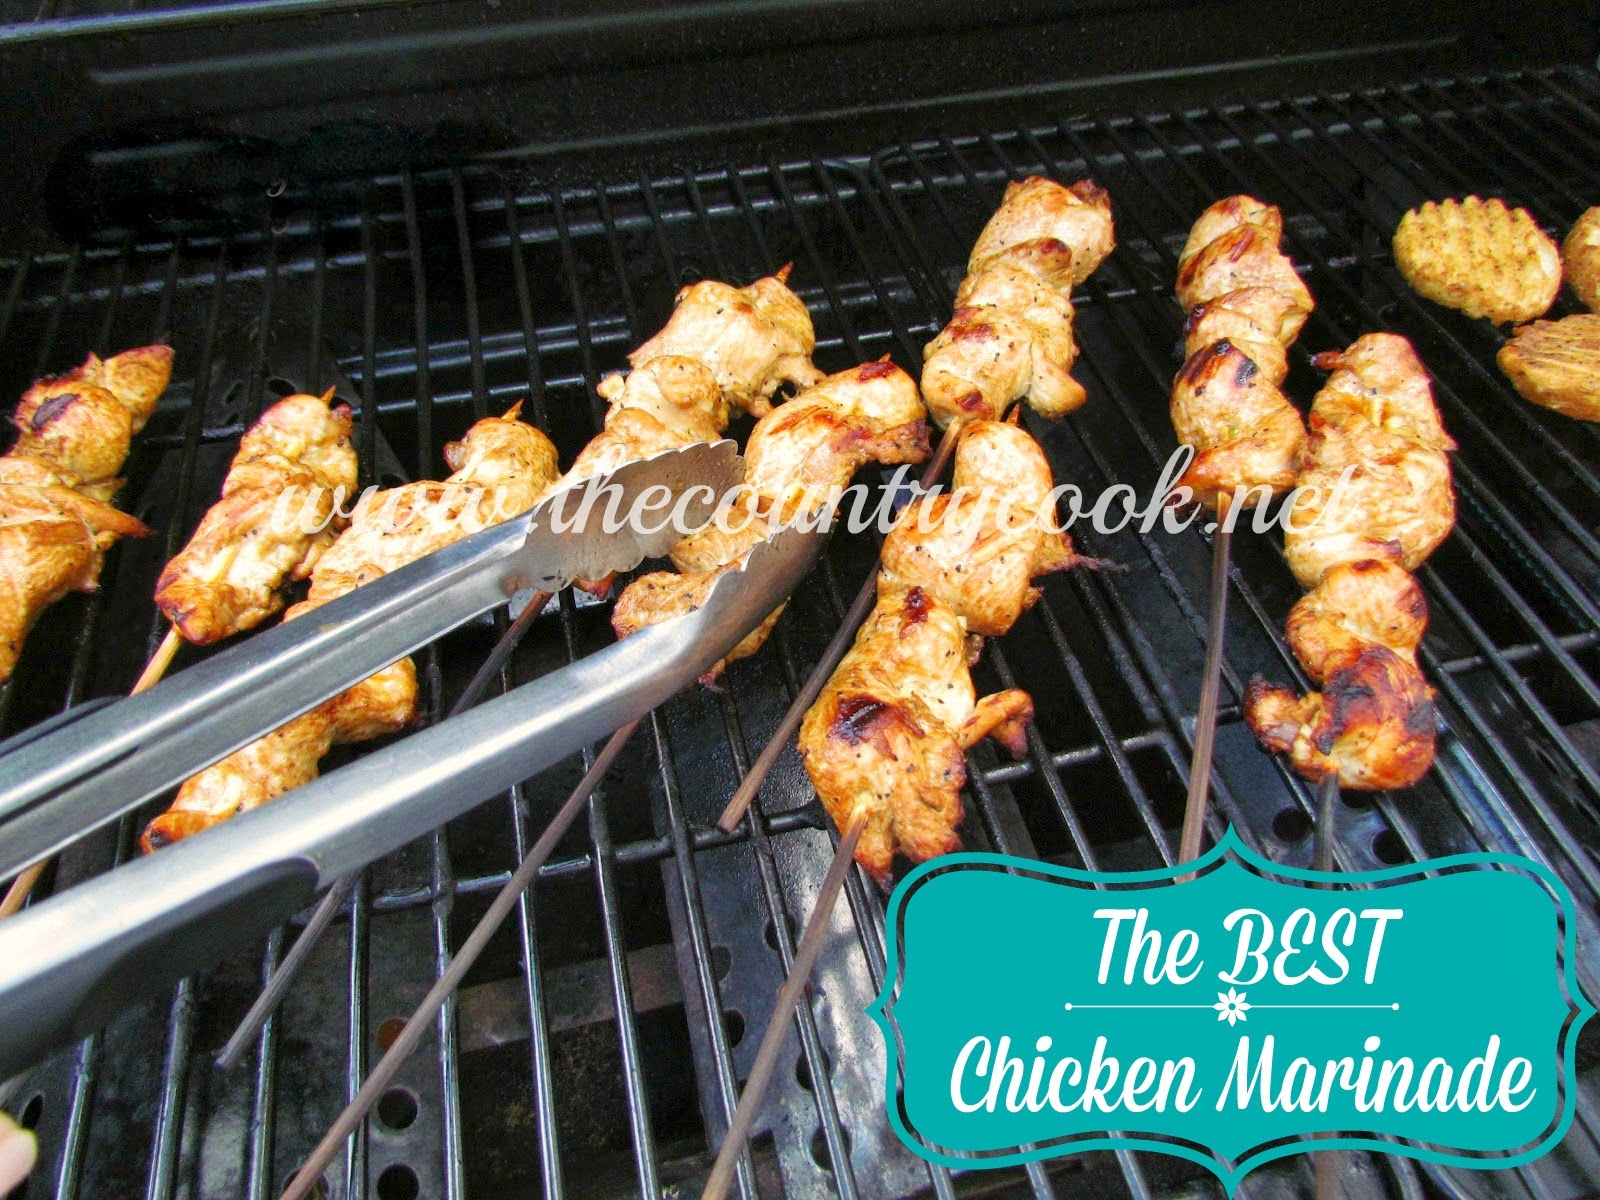 How long do i grill chicken kabobs - The Best Chicken Marinade